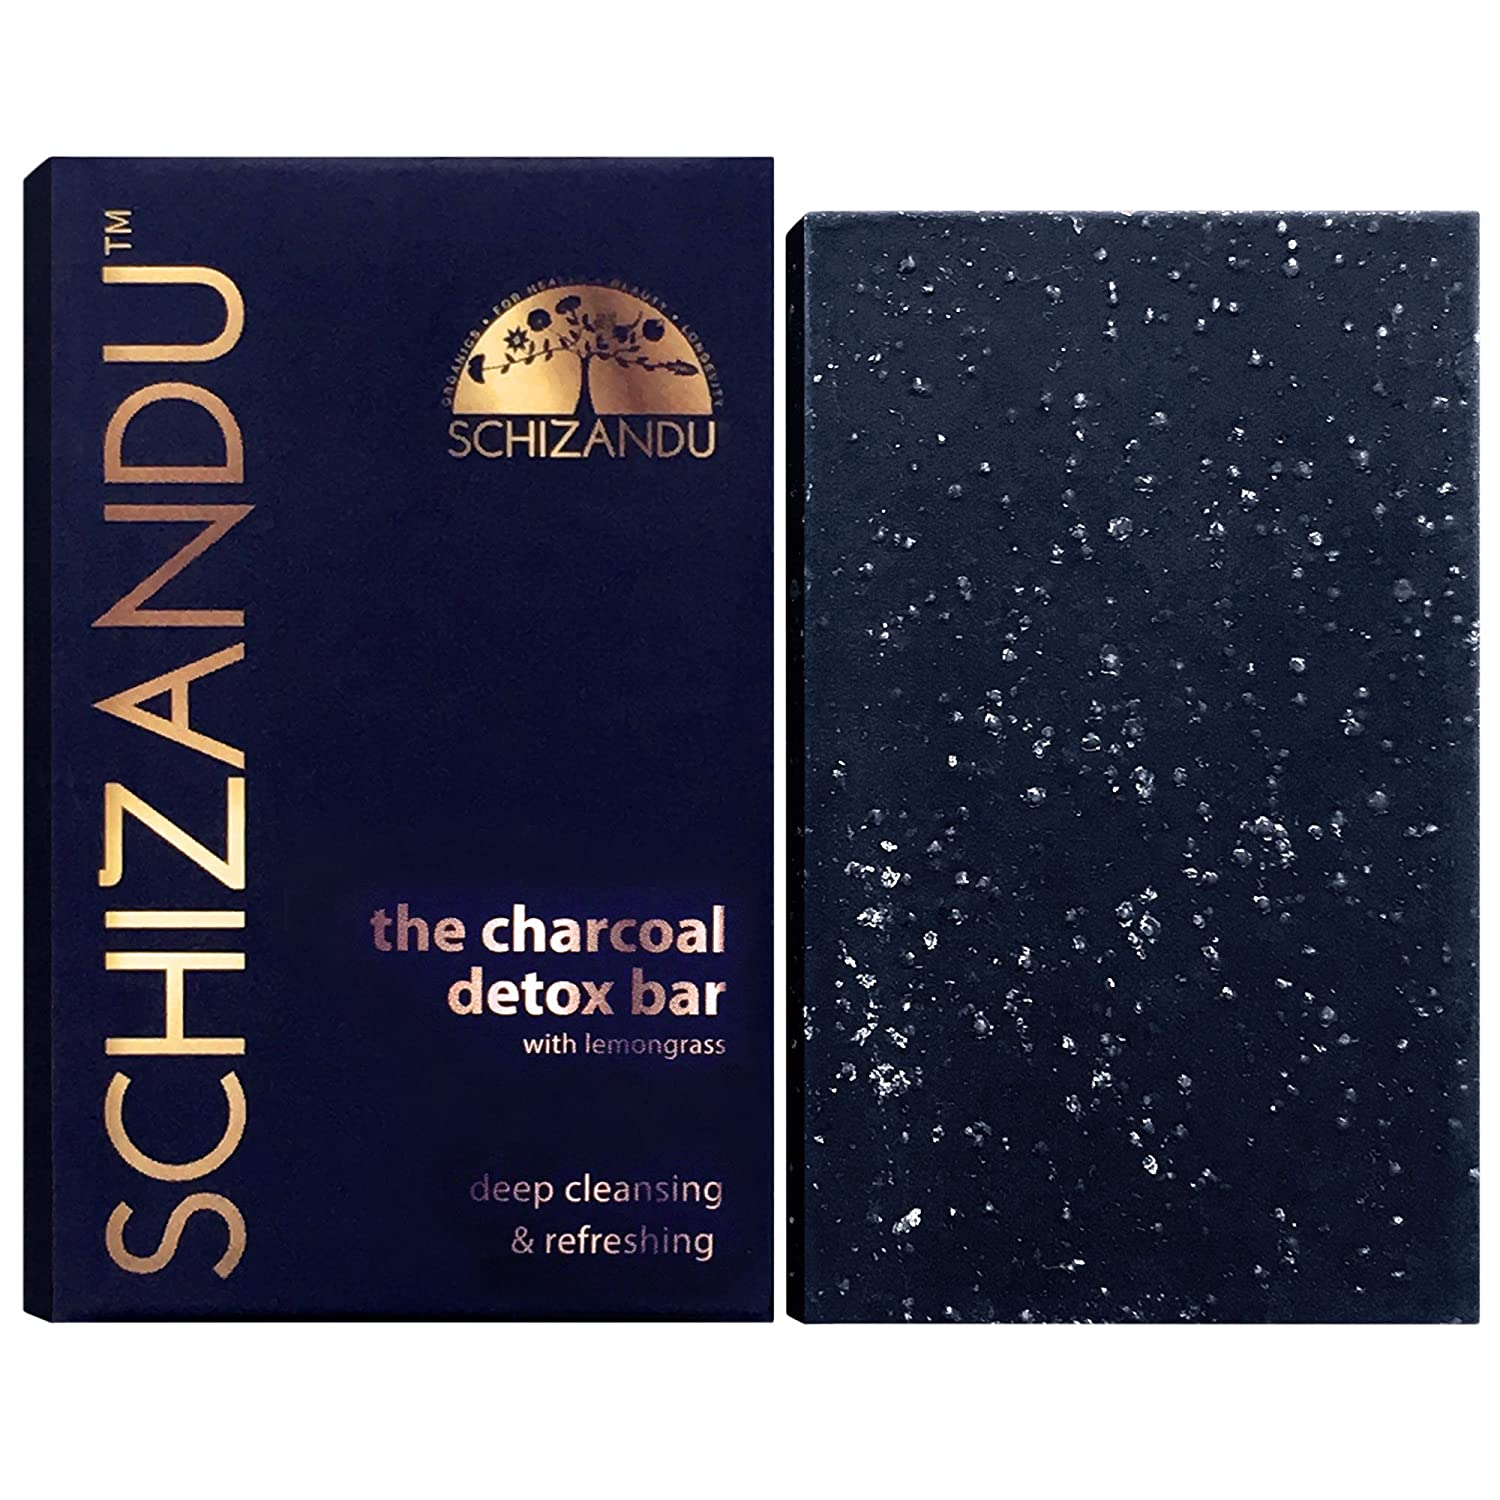 Charcoal Cleansing Bar Soap, Organic Herbal Skin Detox with Activated Charcoal, Natural Luxury For Facial and Body Detoxification, Moisturizing, Nourishing Beauty Bar, Vegan, Non GMO, 4 oz